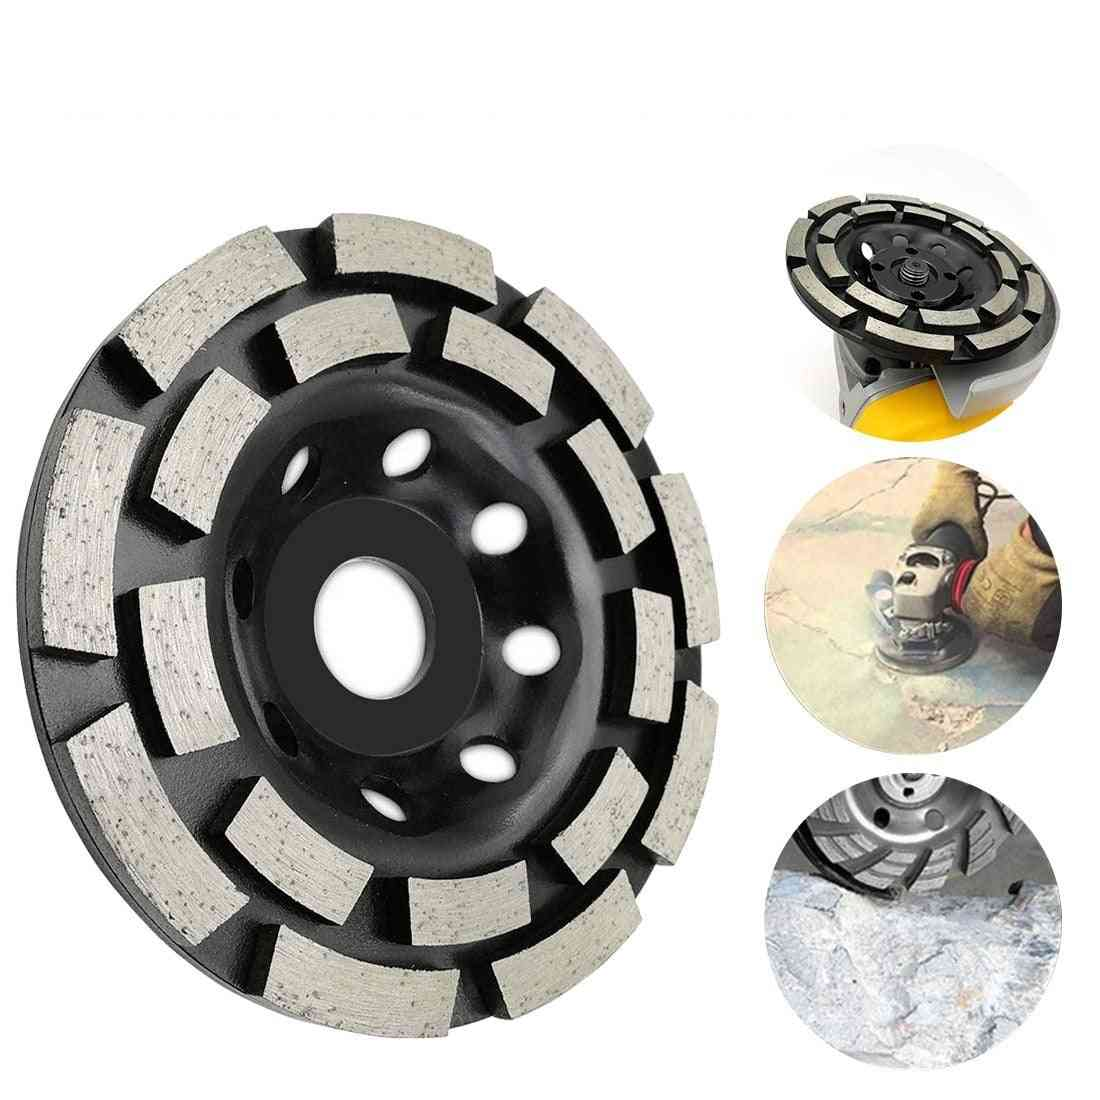 Diamond Grinding Disc Concrete Grinder Wheel Cutting Cup Saw Blade Tool